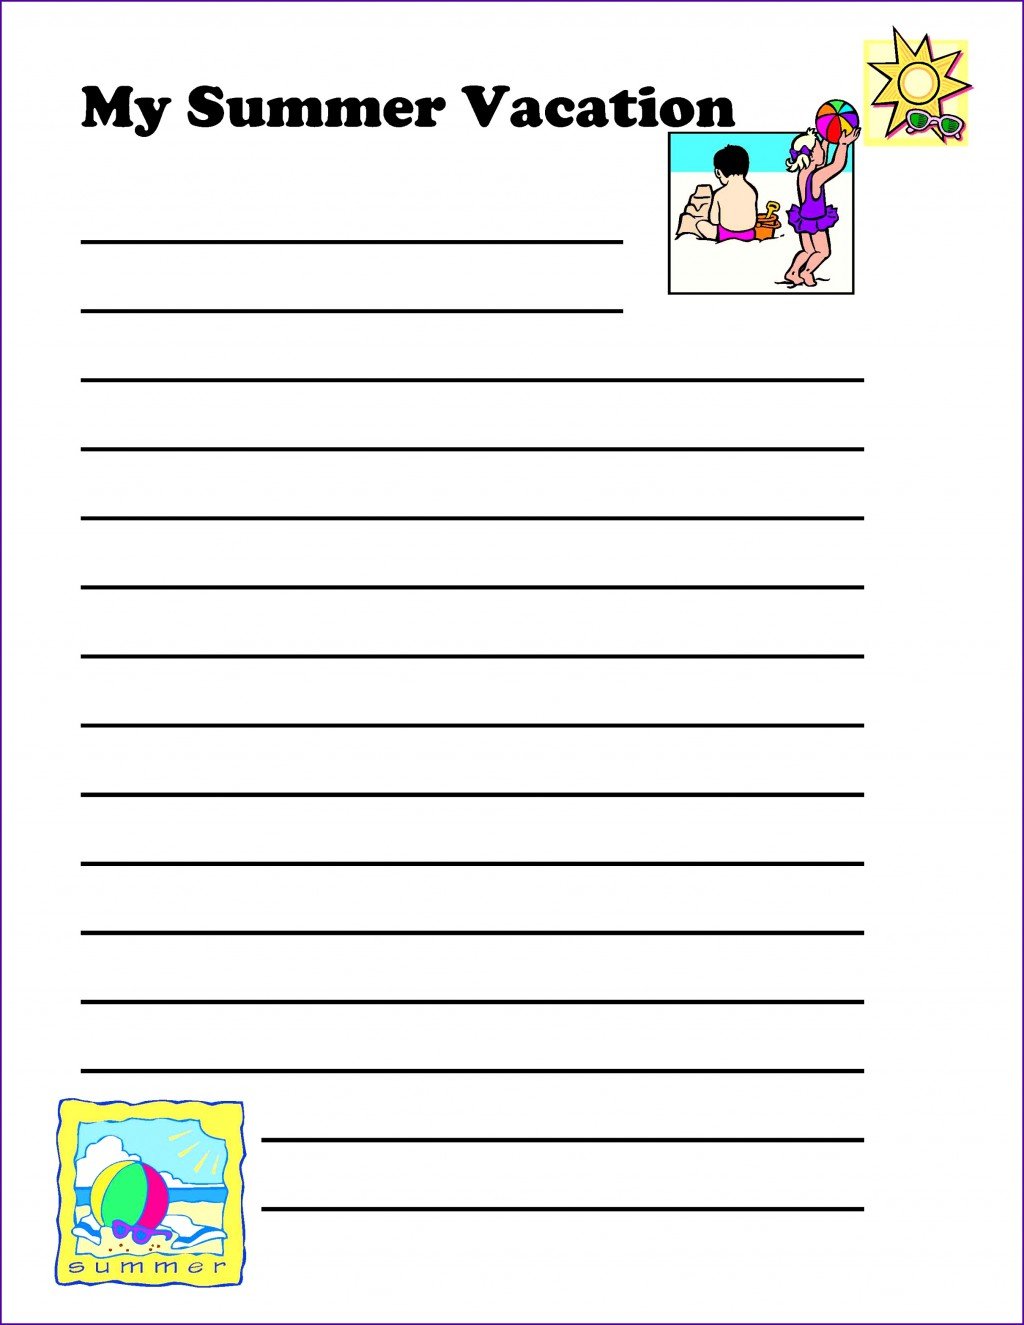 025 Summer Vacation Essay Holiday Planner Template For Admission Writing Plan Euyozr New Frightening Class 6 In Urdu On Marathi Large